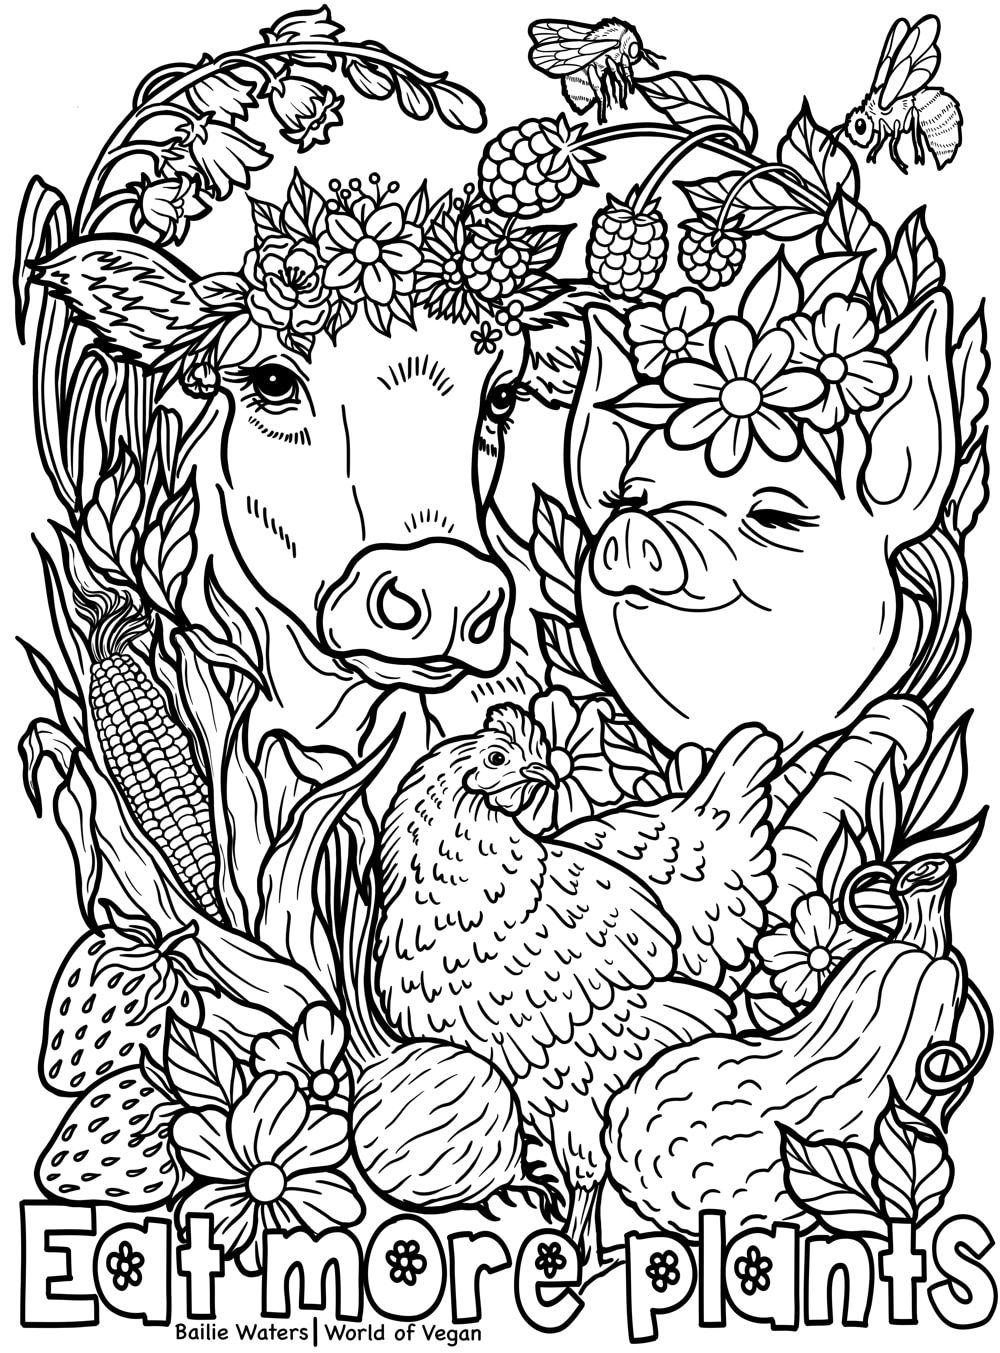 Printable Vegan Coloring Page A Mindfulness Activity For Kids Coloring Pages Free Printable Coloring Pages Kids Coloring Books